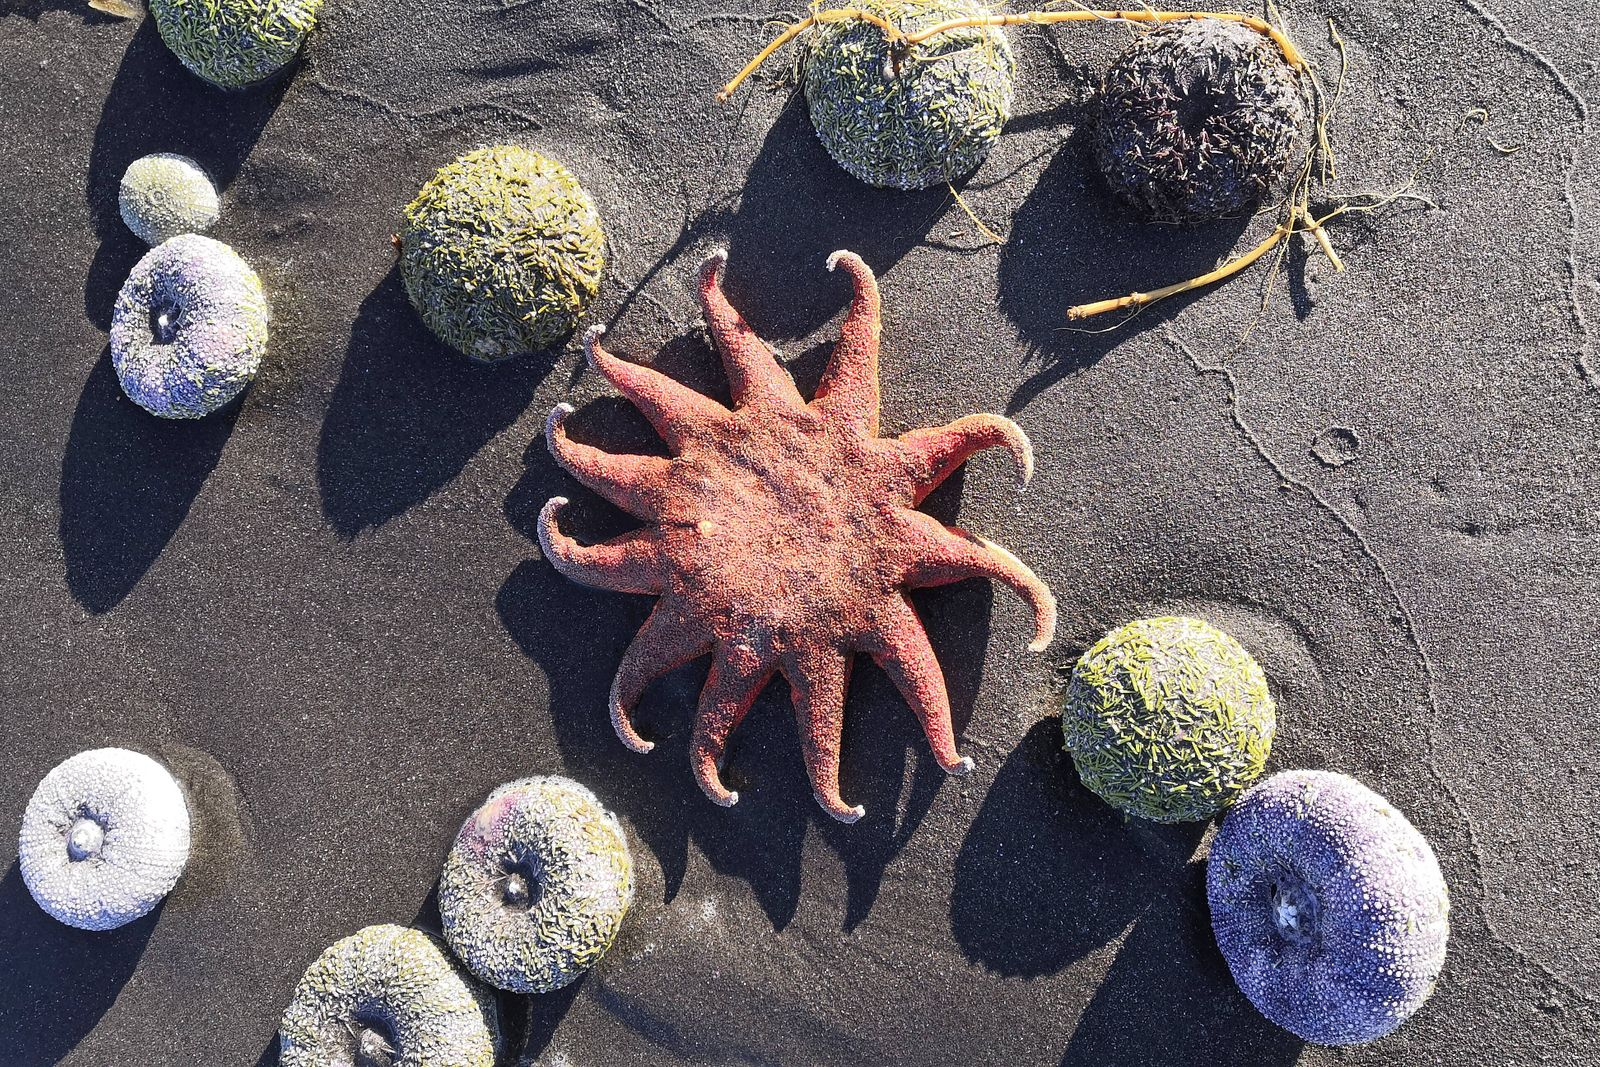 VILYUCHINSK, RUSSIA - OCTOBER 1, 2020: A starfish on the shore of the Bezymyannaya Bay. Many dead marine animals are ca